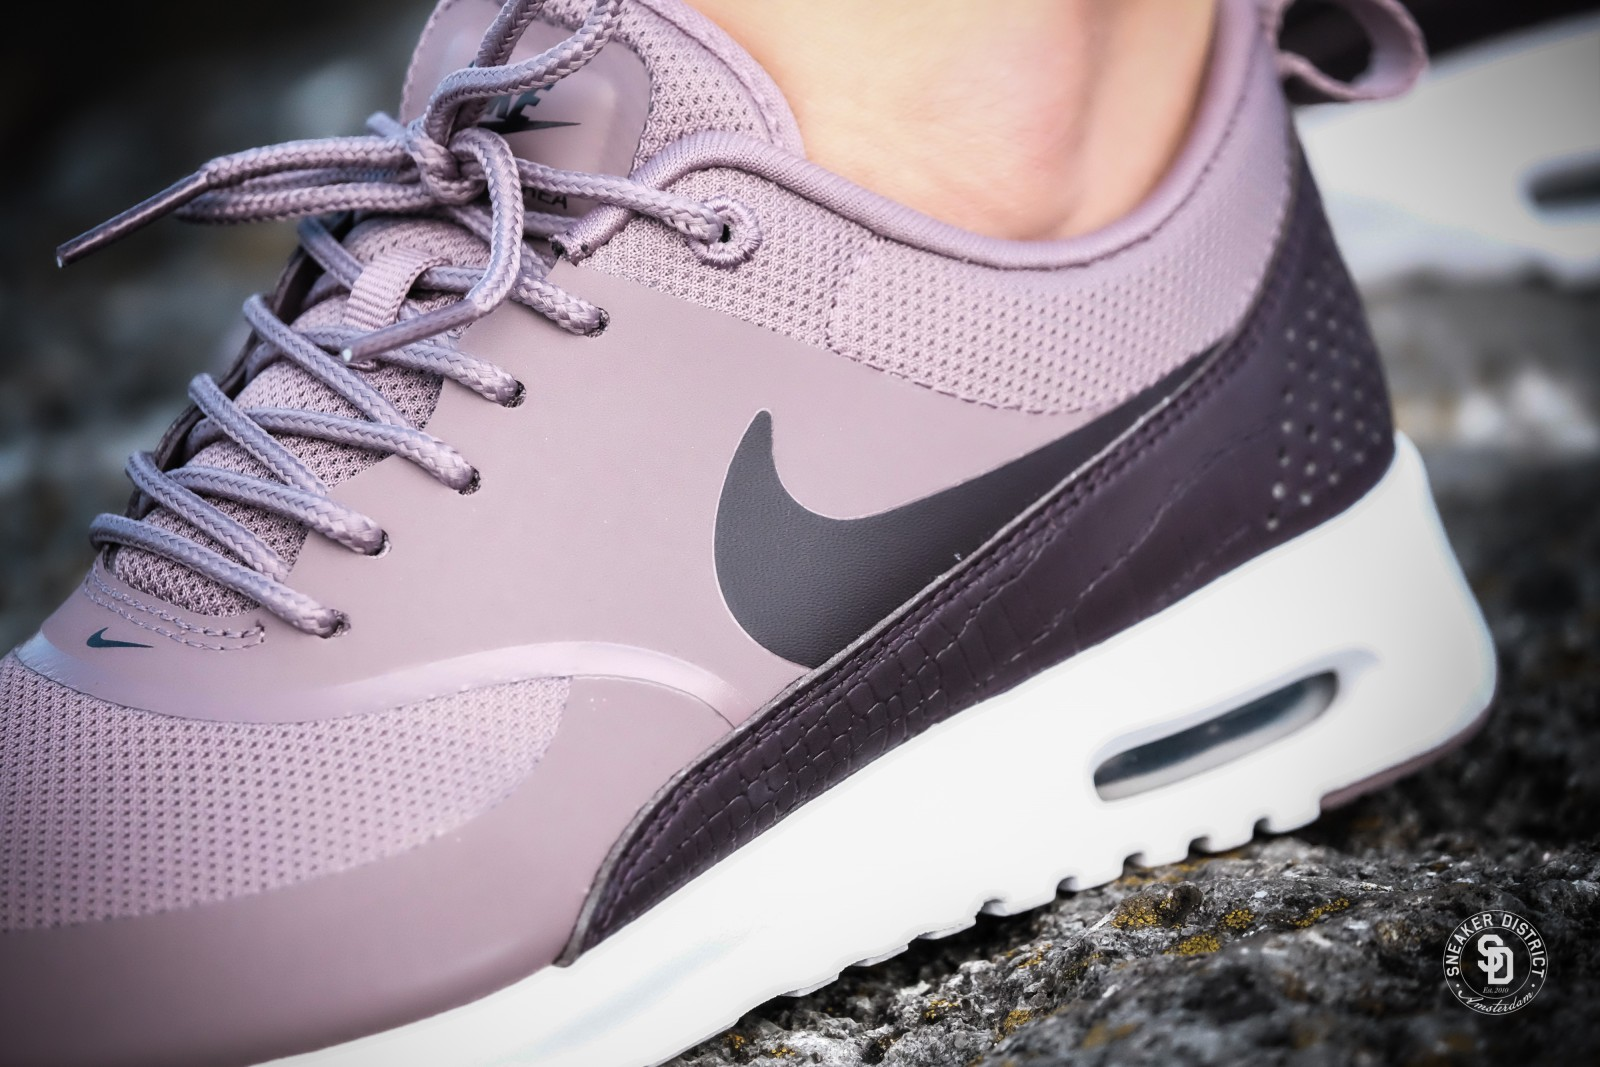 Nike Wmns Air Max Thea taupe grey/port wine-white in Größe 40 / US 8,5